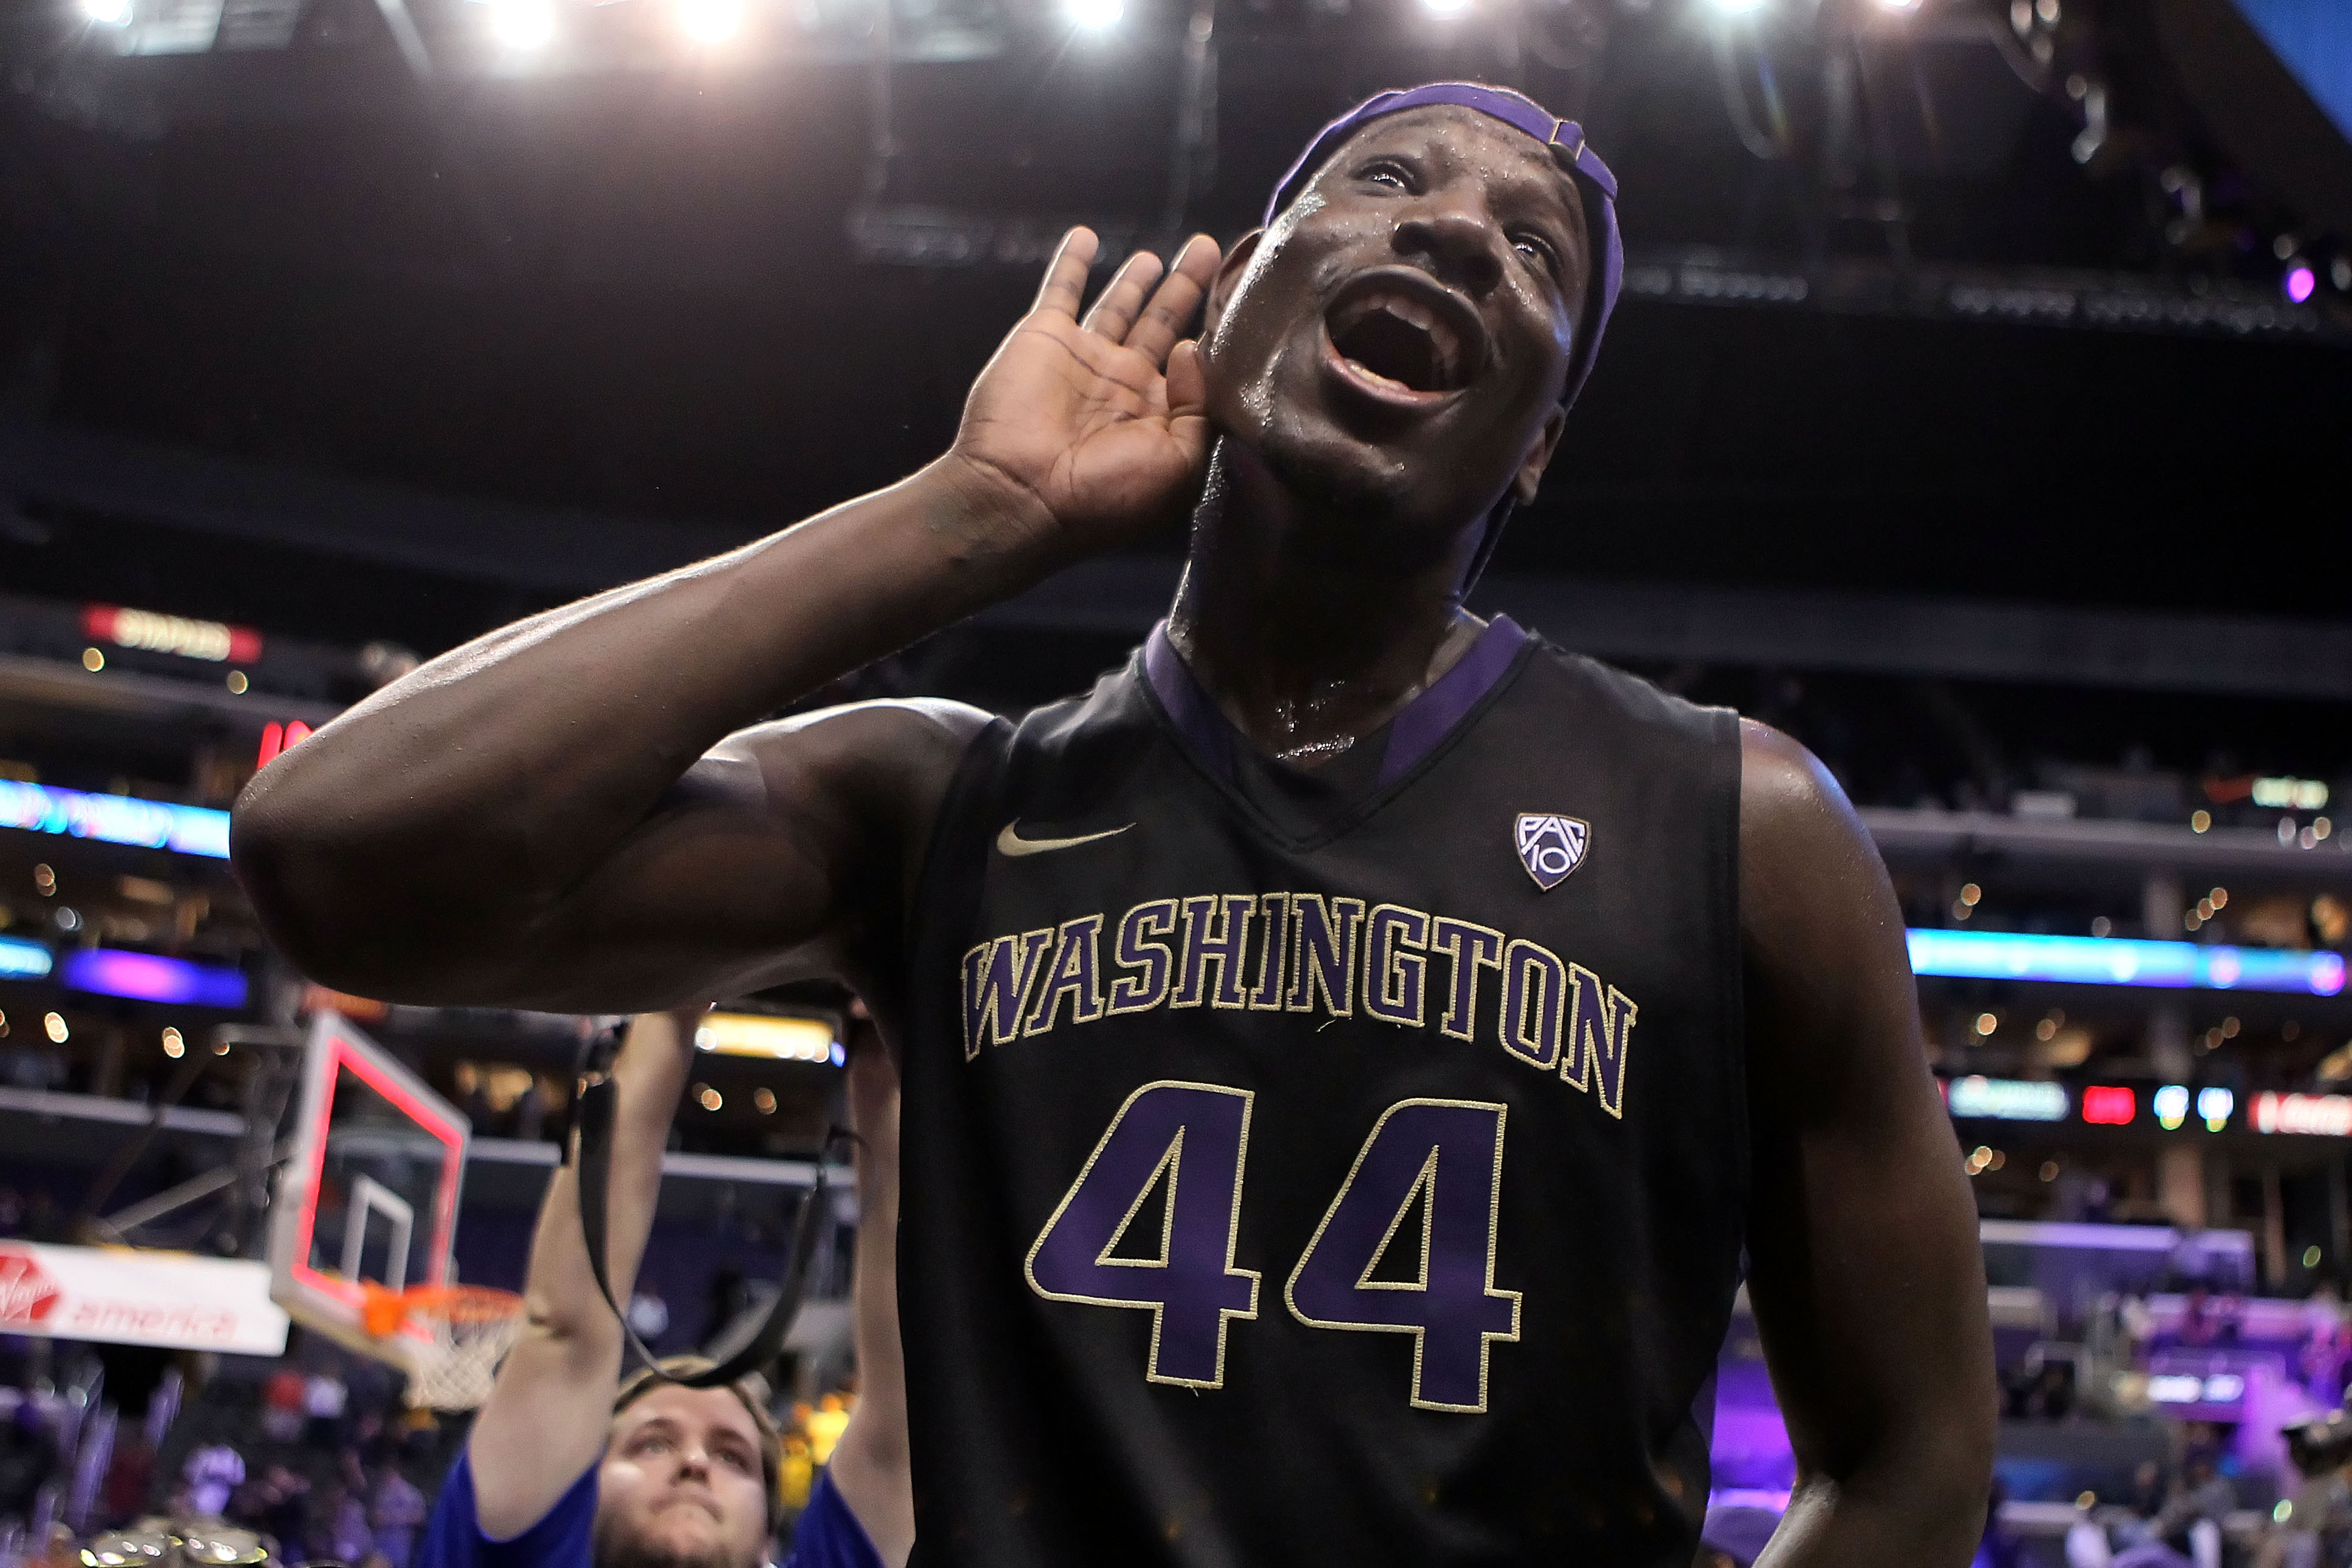 LOS ANGELES, CA - MARCH 12:  Darnell Gant #44 of the Washington Huskies celebrates after defeating the Arizona Wildcats 77-75  in overtime in the championship game of the 2011 Pacific Life Pac-10 Men's Basketball Tournament at Staples Center on March 12,